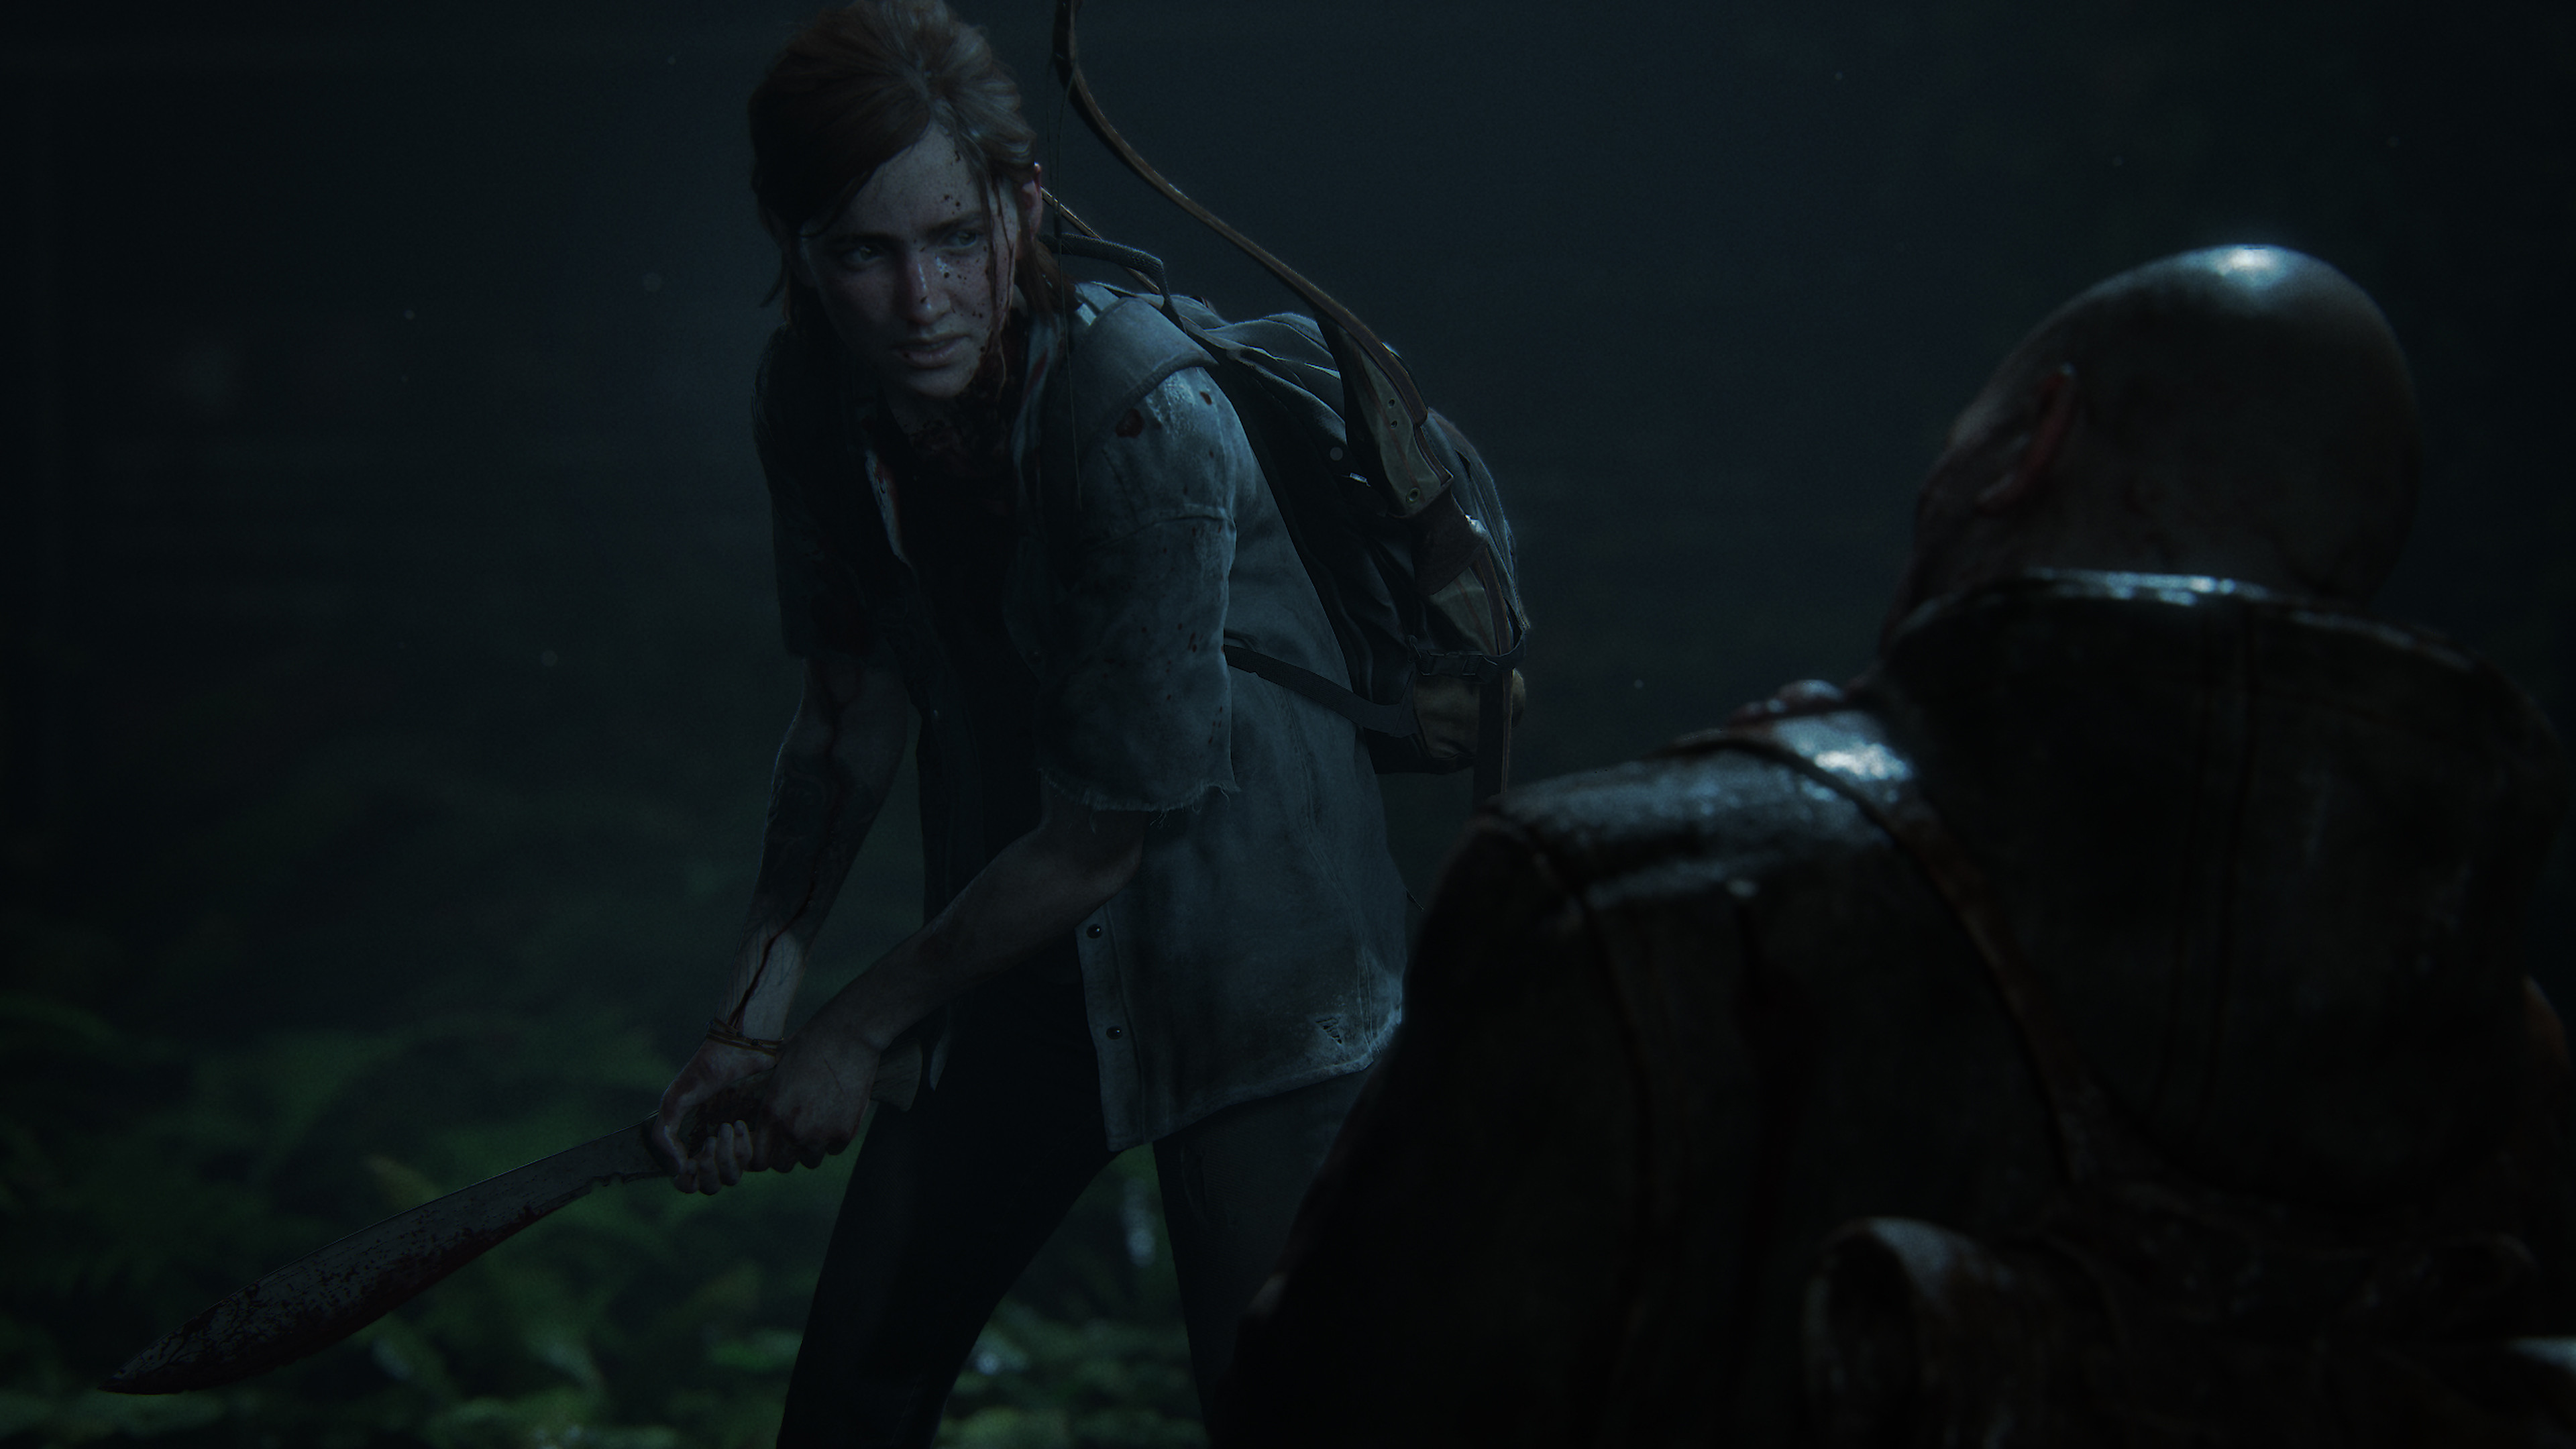 Free Download The Last Of Us Part Ii Game Playstation 3840x2160